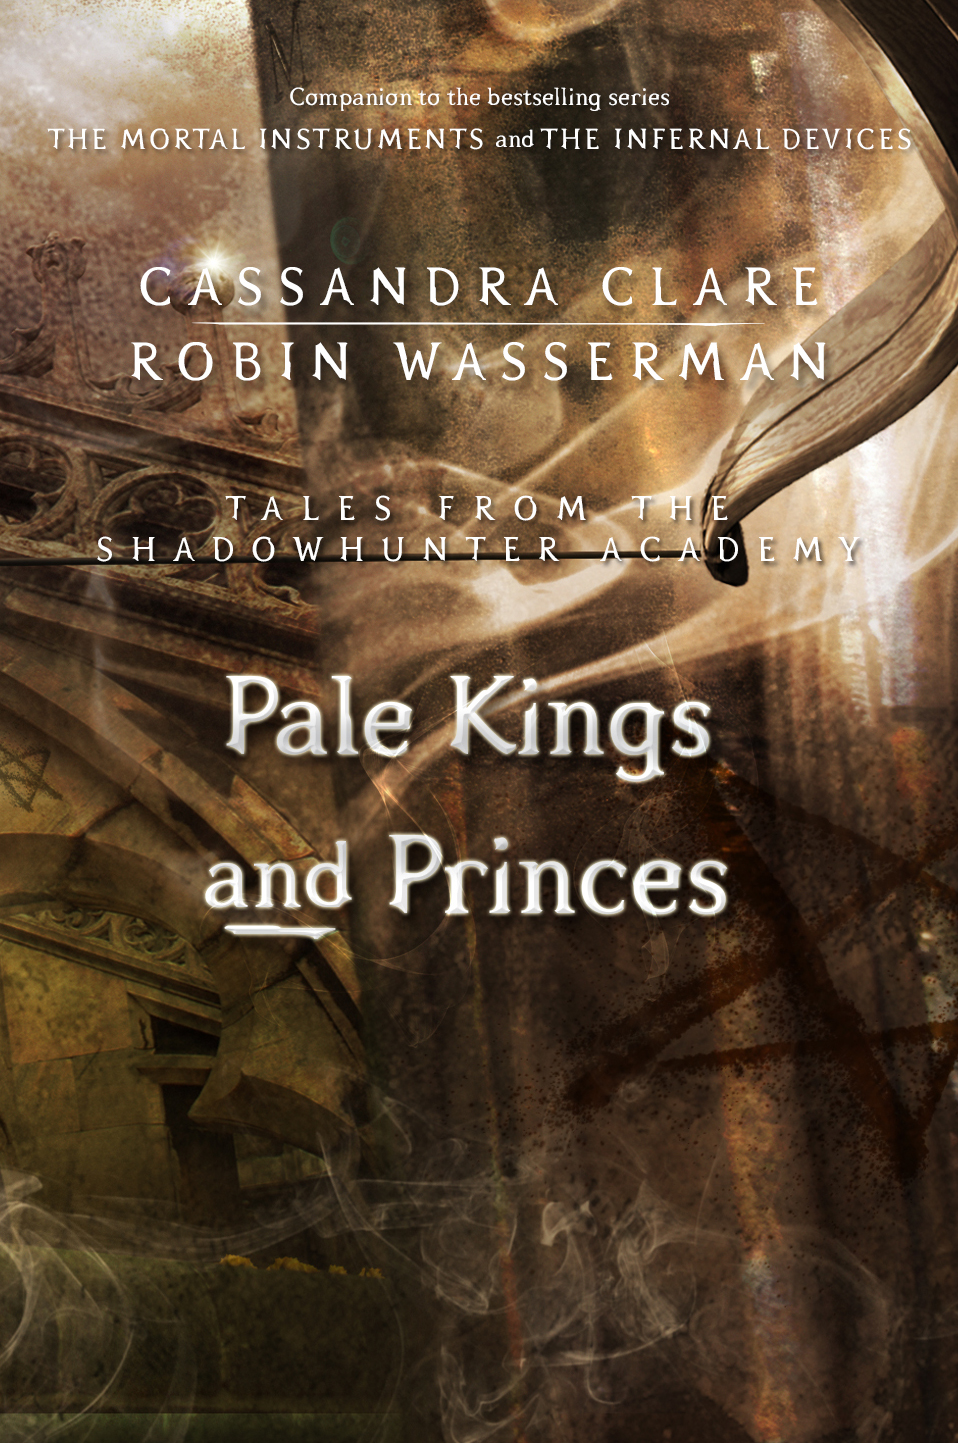 Image result for pale kings and princes book